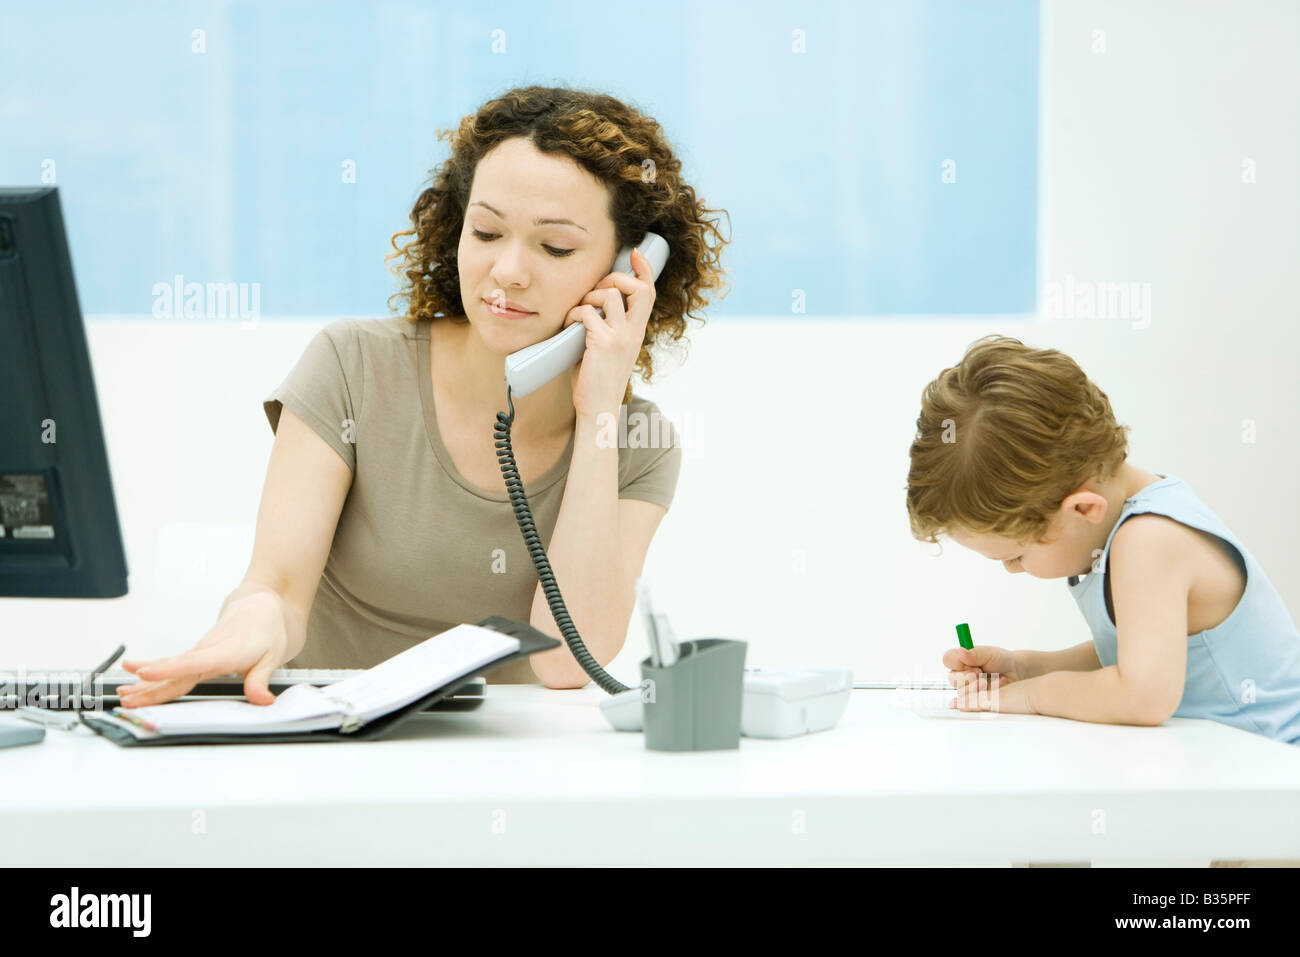 Woman using phone and looking at agenda, young son sitting beside her, coloring - Stock Image